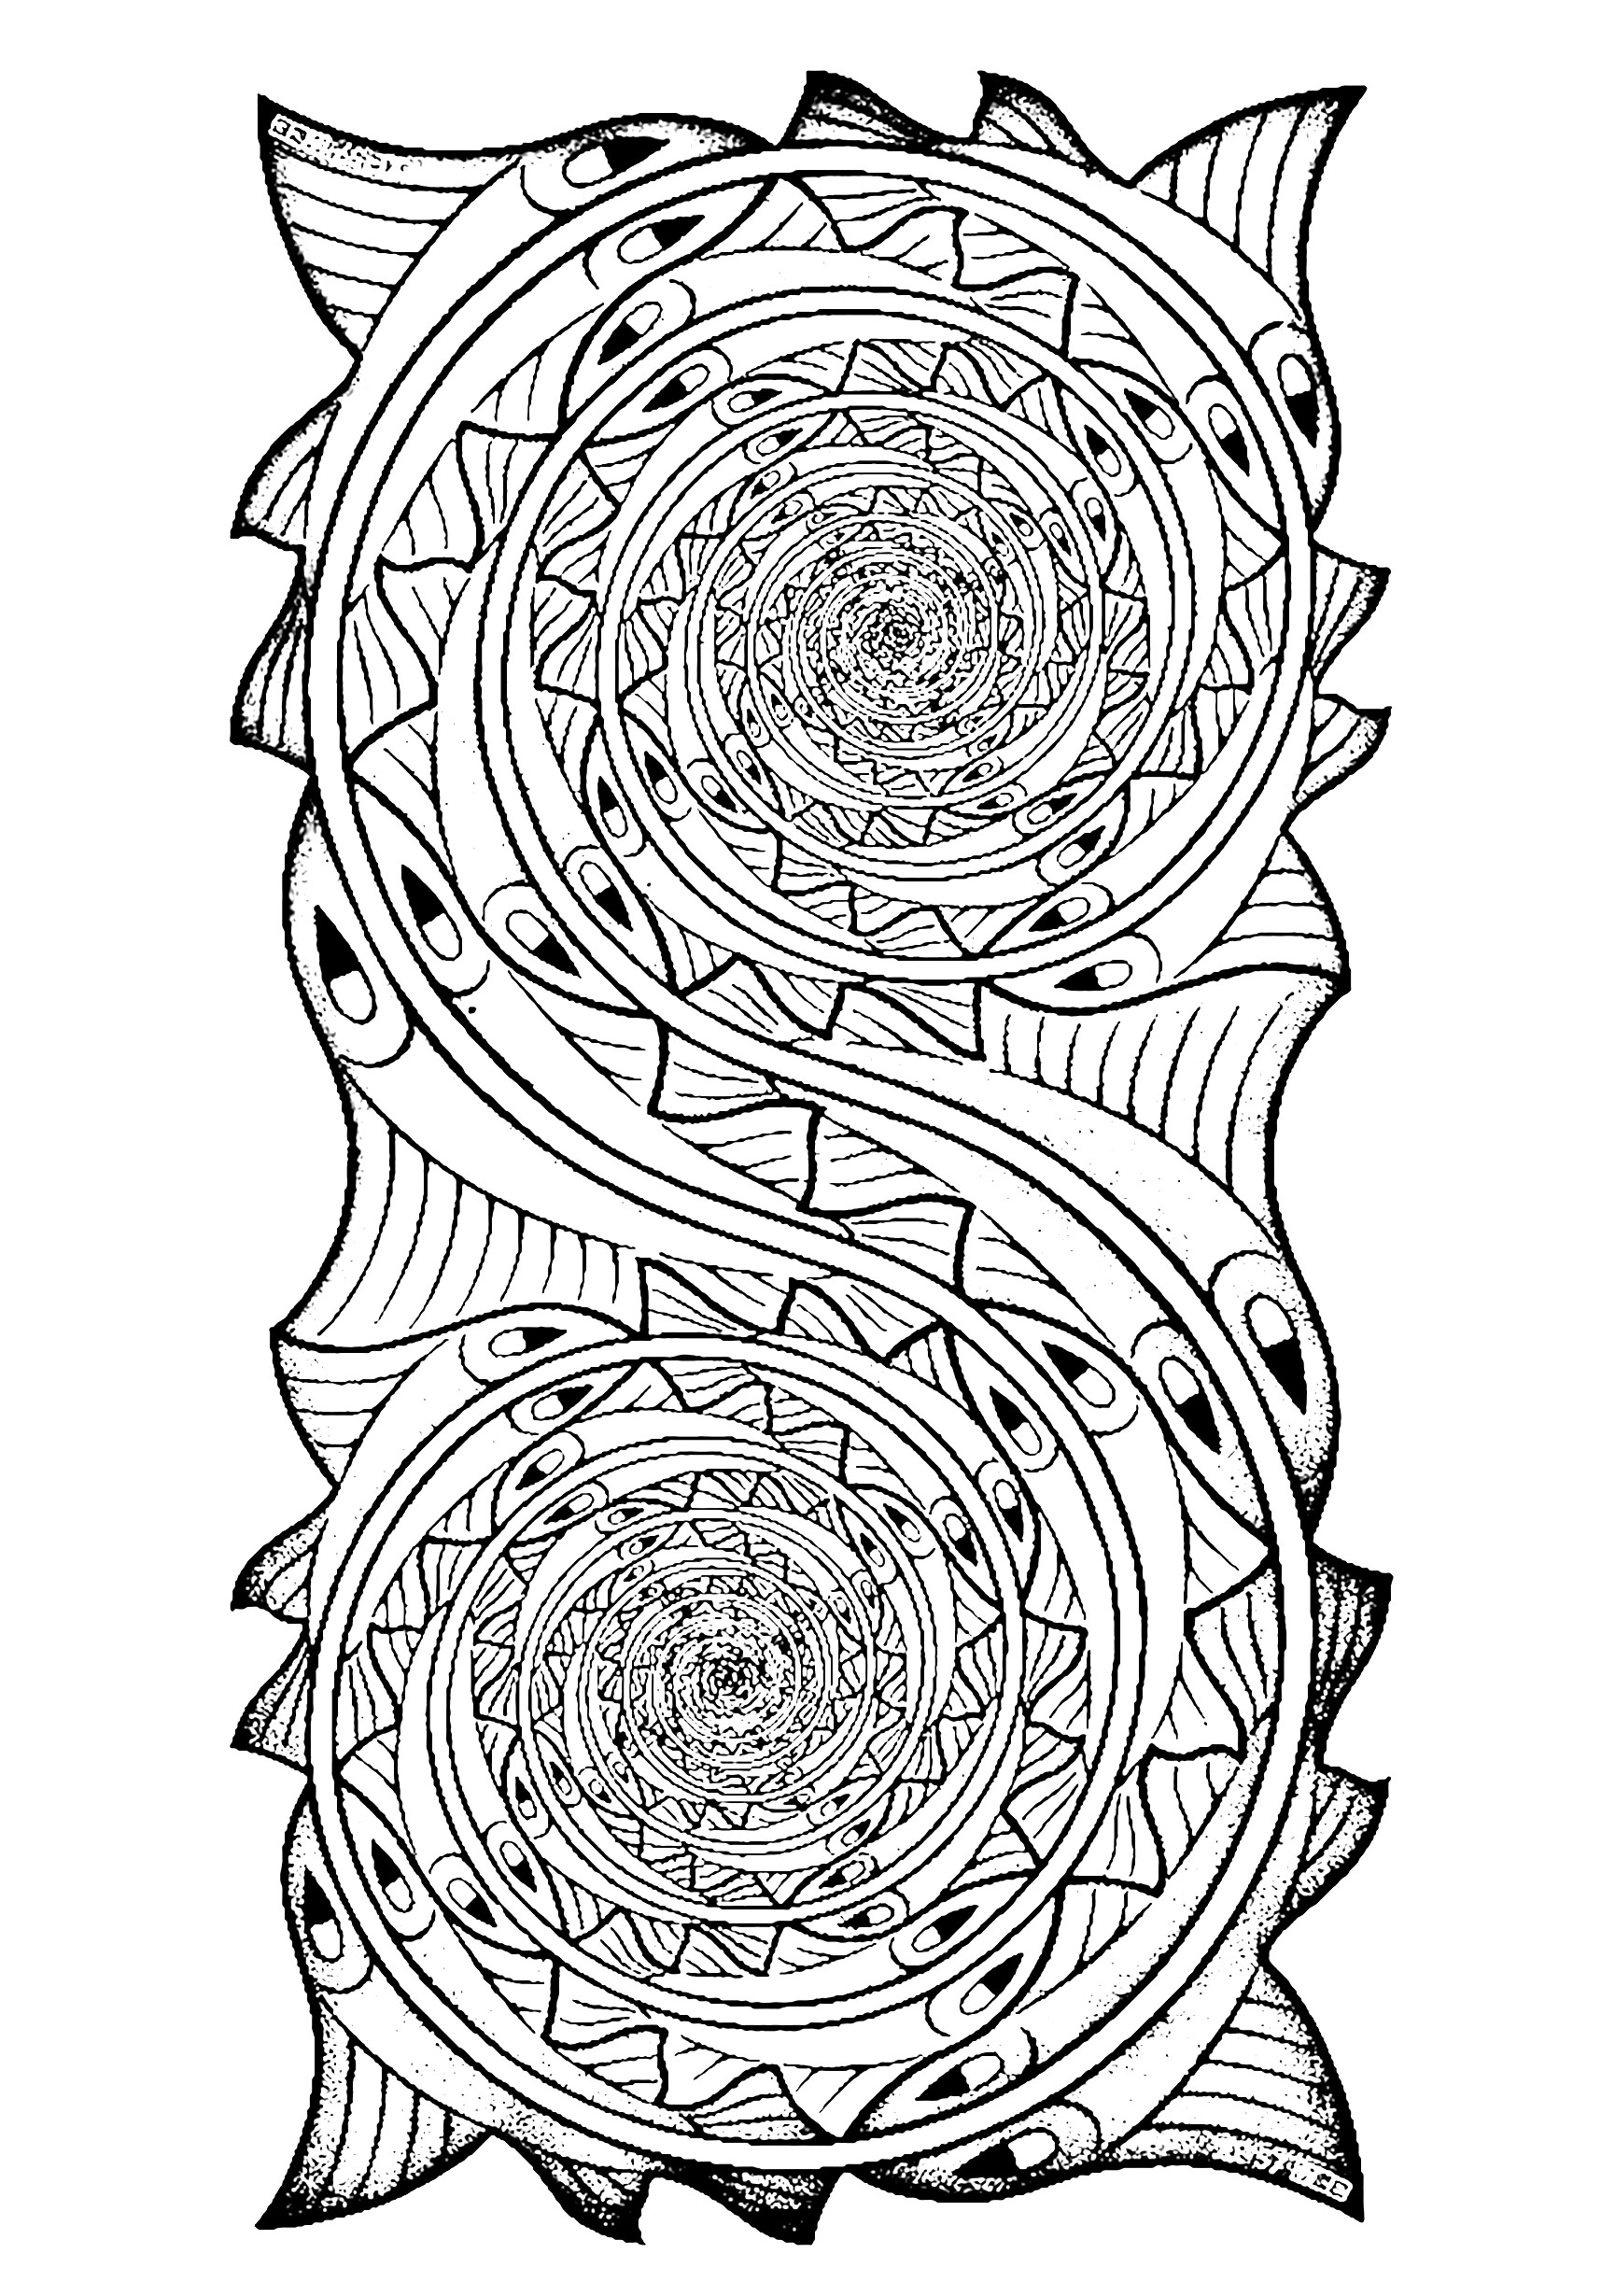 escher coloring pages 50 trippy coloring pages 15922 mc escher coloring pages pages escher coloring